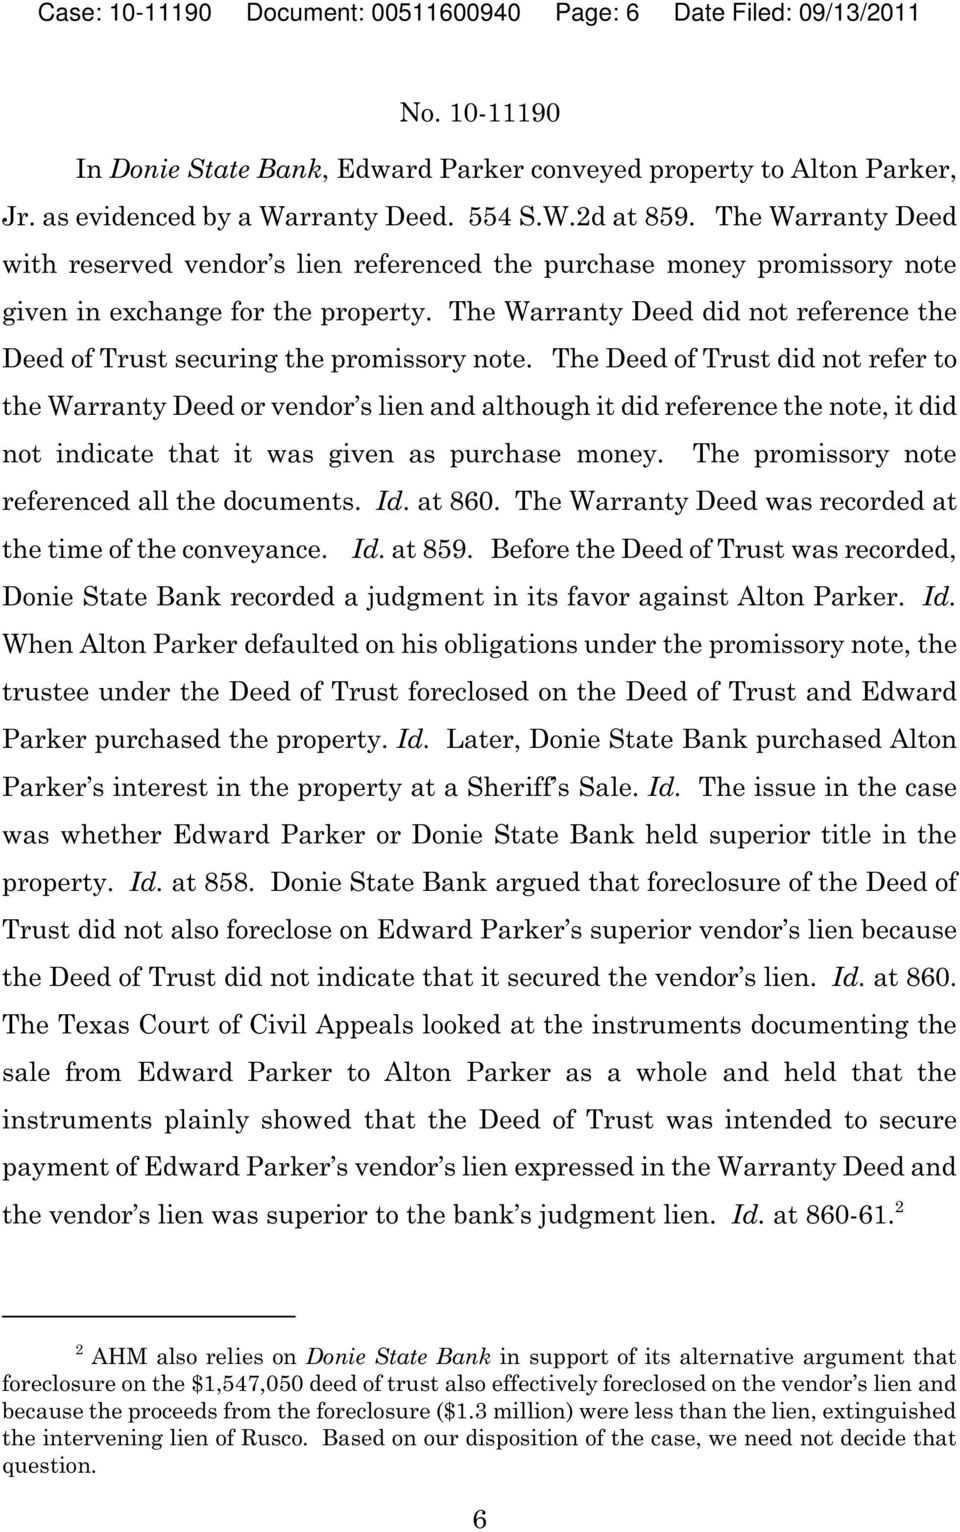 The Warranty Deed did not reference the Deed of Trust securing the promissory note.